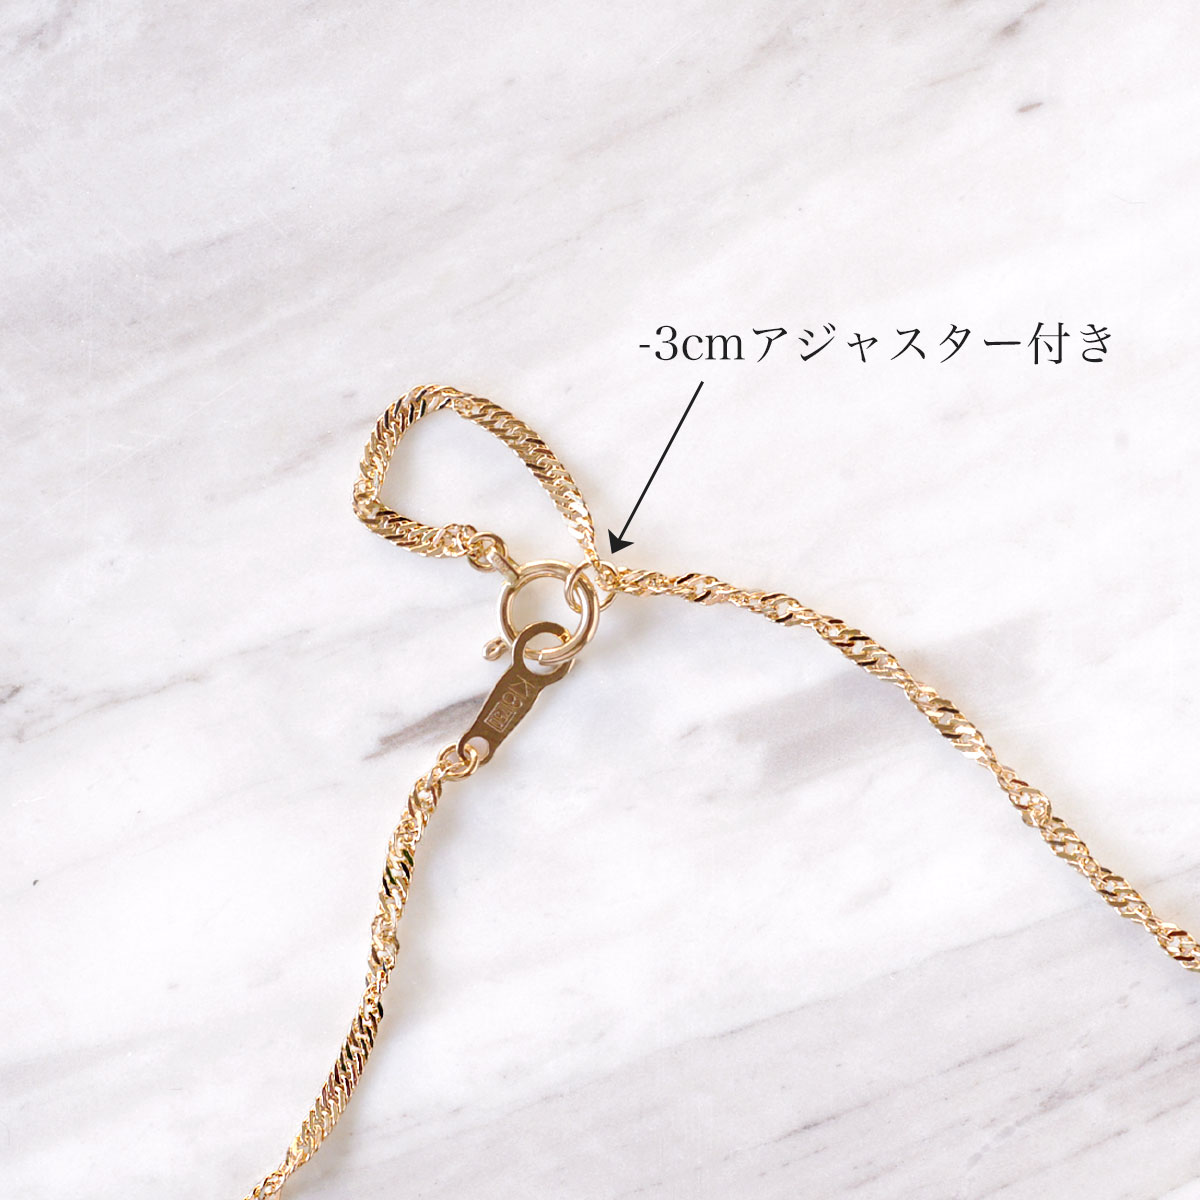 K18 イエローゴールド スクリュー 幅1.4mm チェーン 45cm / プレゼント ギフト gold necklace ach1612a